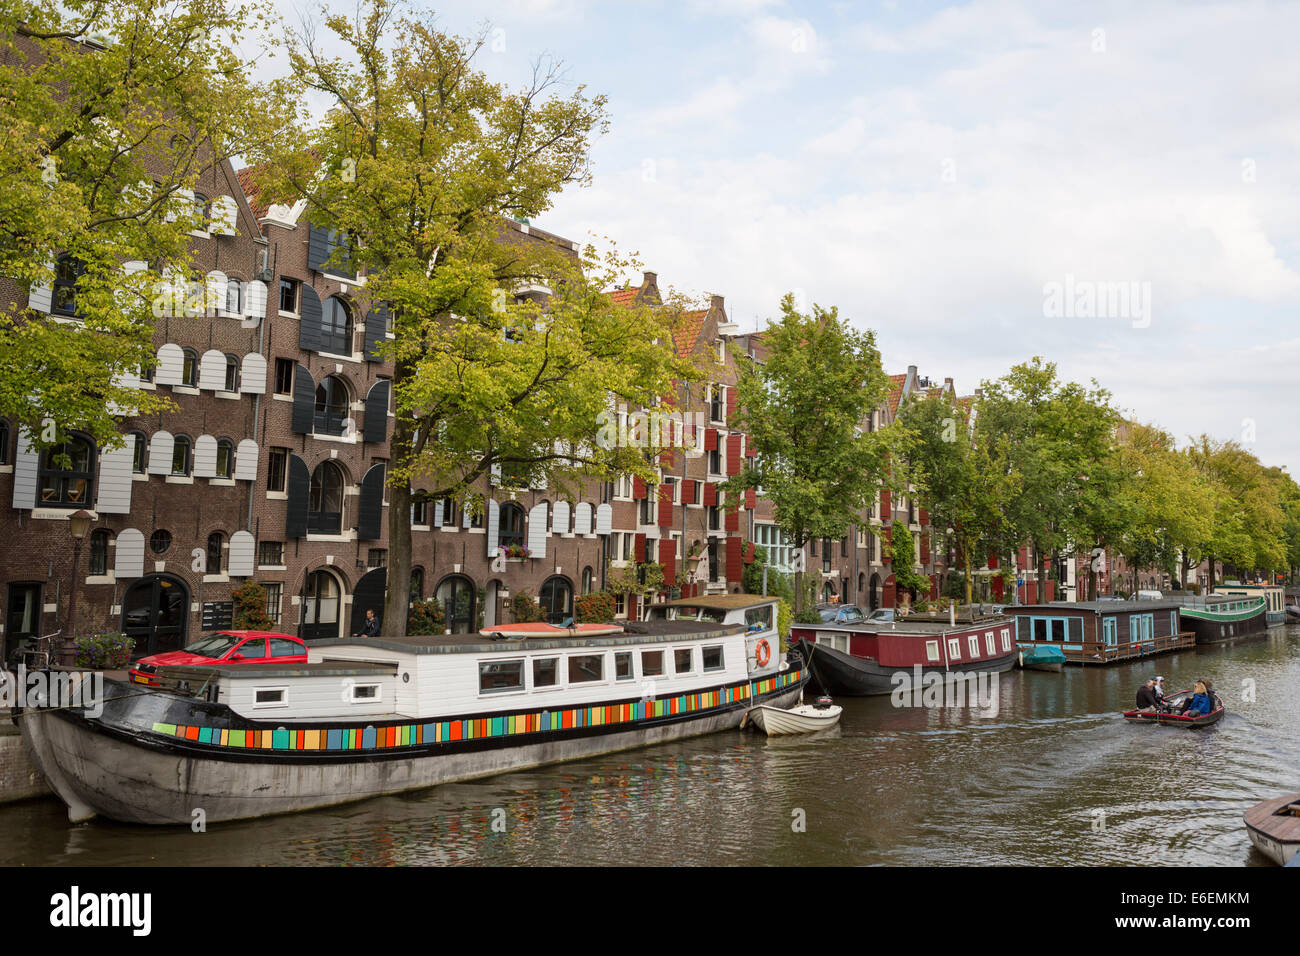 Canal 'de Prinsengracht' with houseboats and historical houses - Stock Image